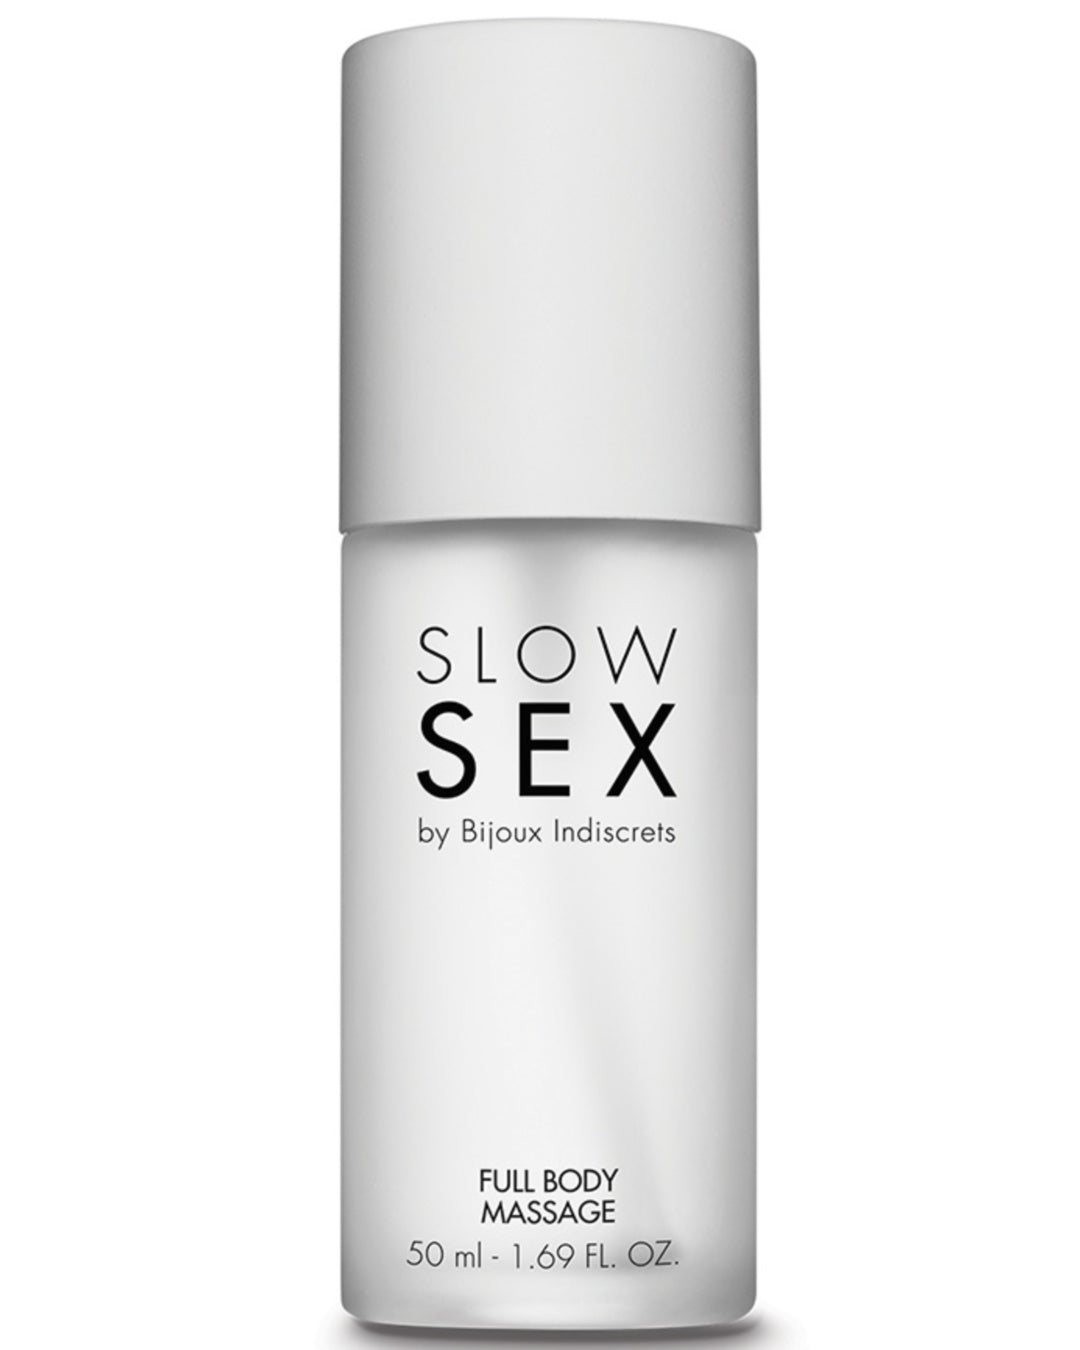 Bijoux Indiscrets Slow Sex Full Body Massage Gel bottle close up